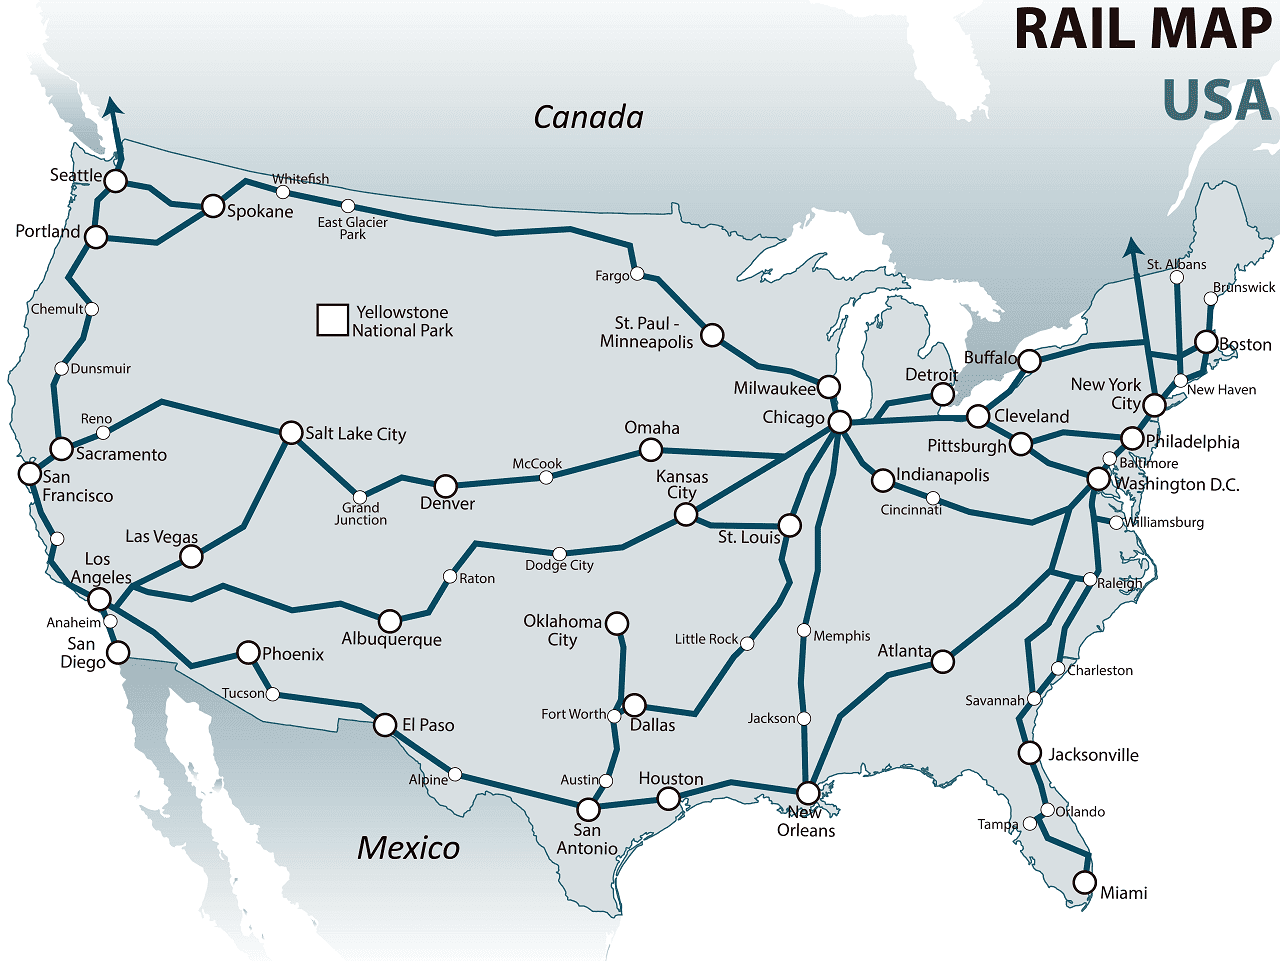 USA rail map